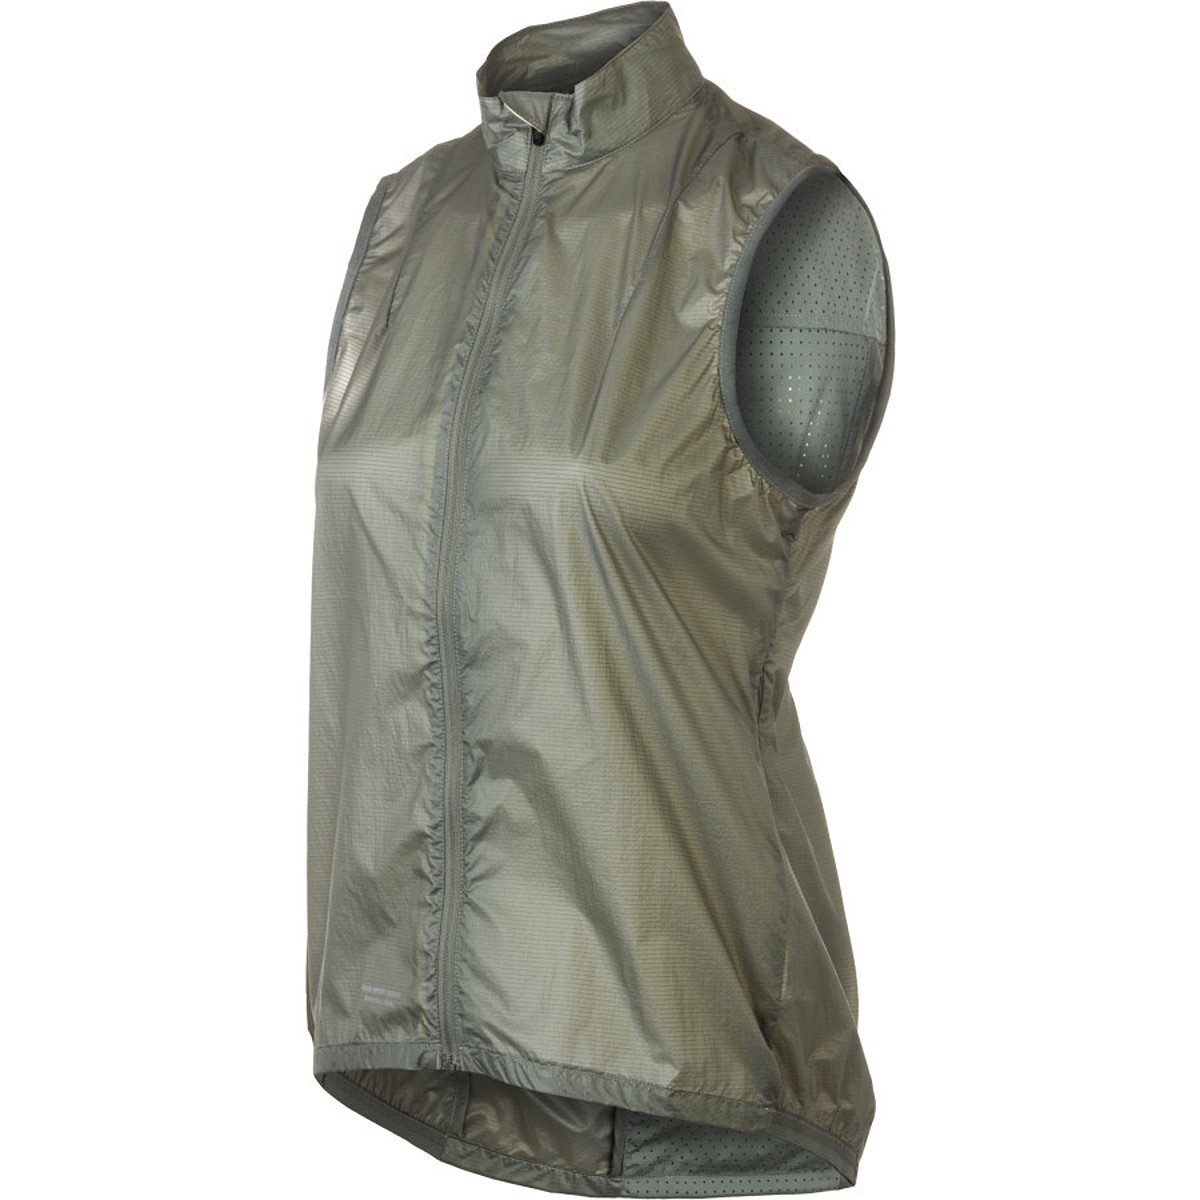 Giro Women''s New Road Wind Cycling Vest Castor Grey (Small)